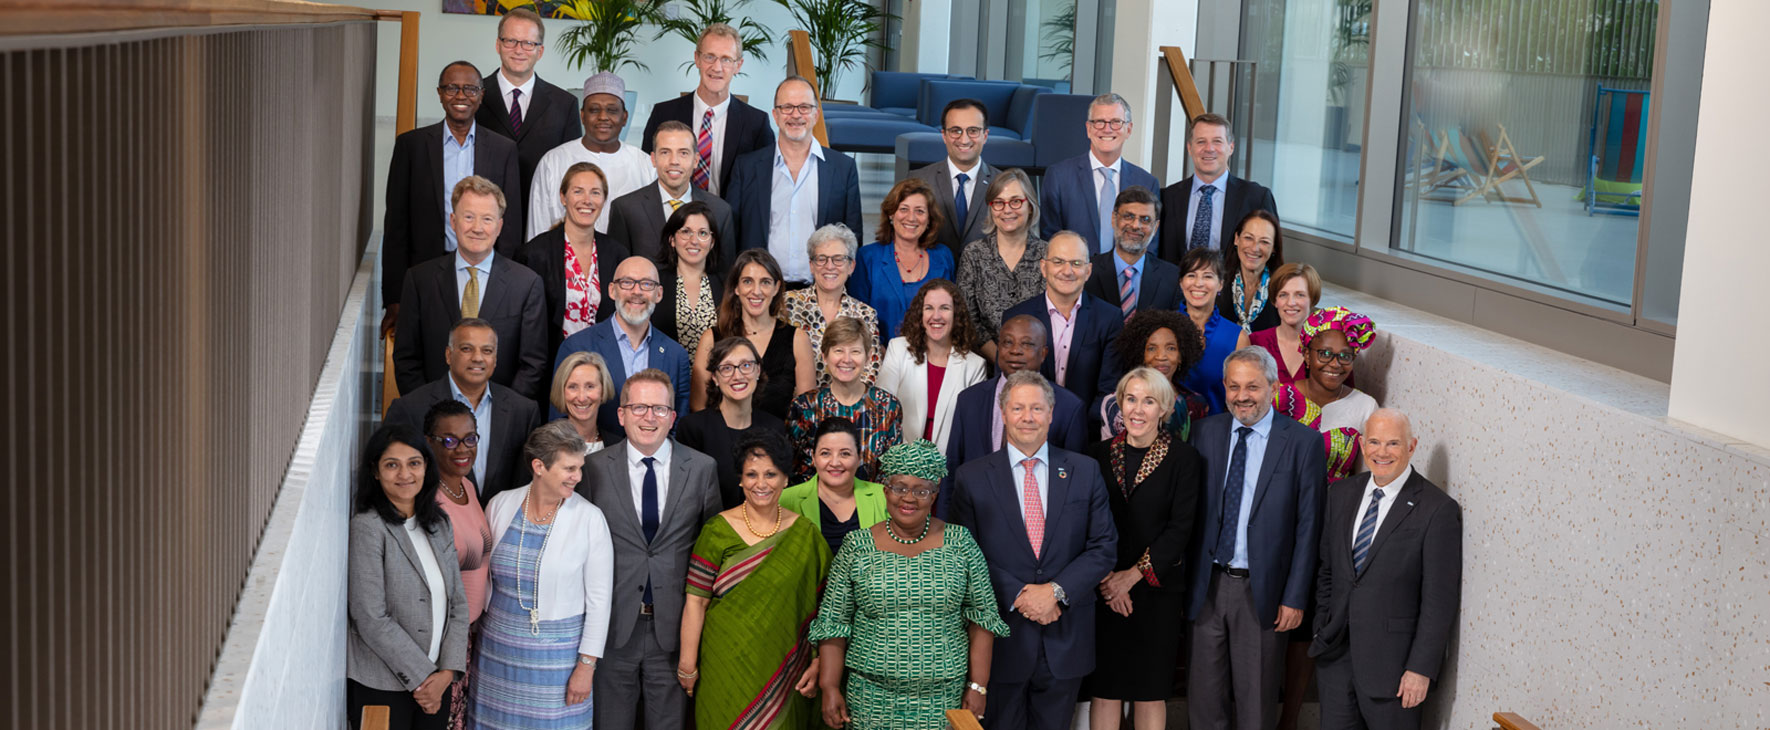 Gavi Board meeting, 26-27 June 2019